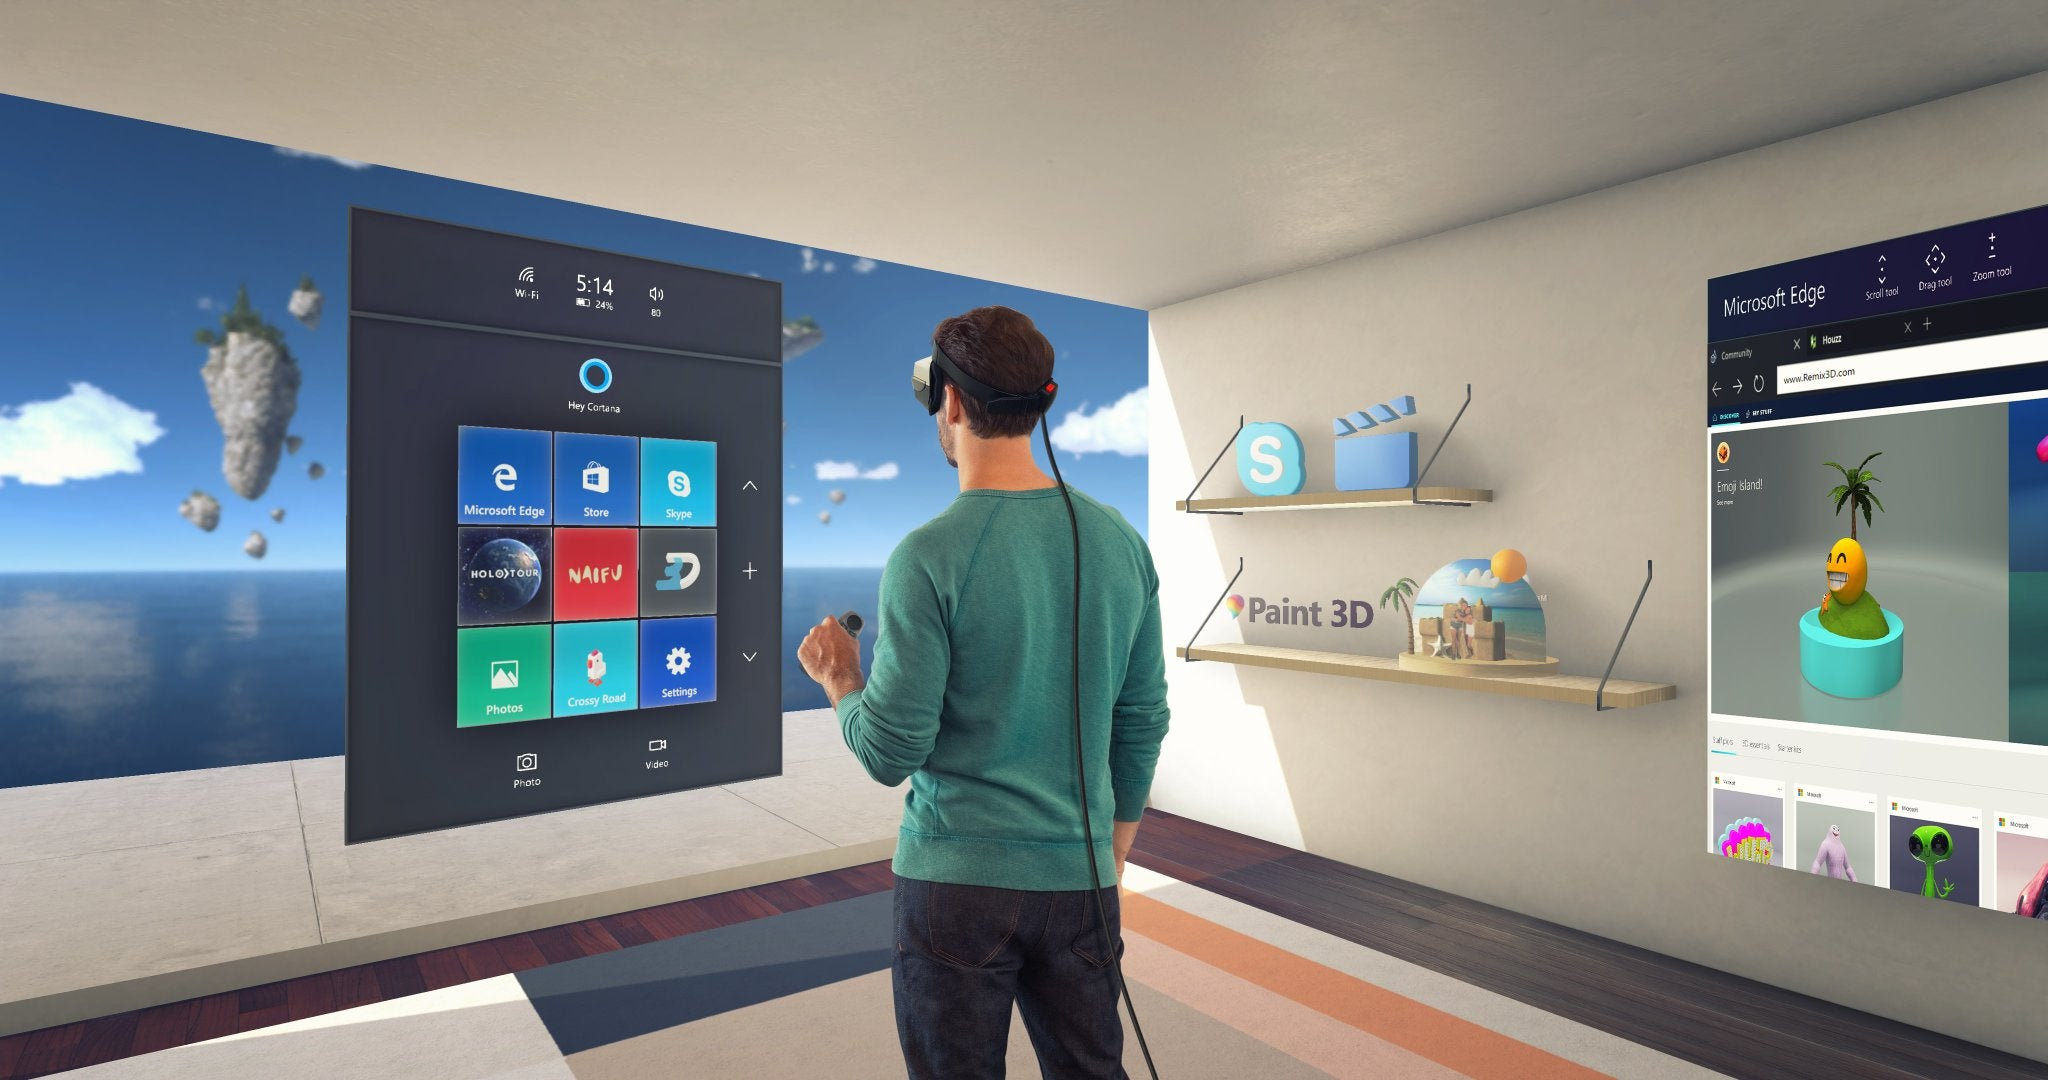 Microsofts 300 Windows 10 VR Headsets 6 Things We Know And 1 Big Question